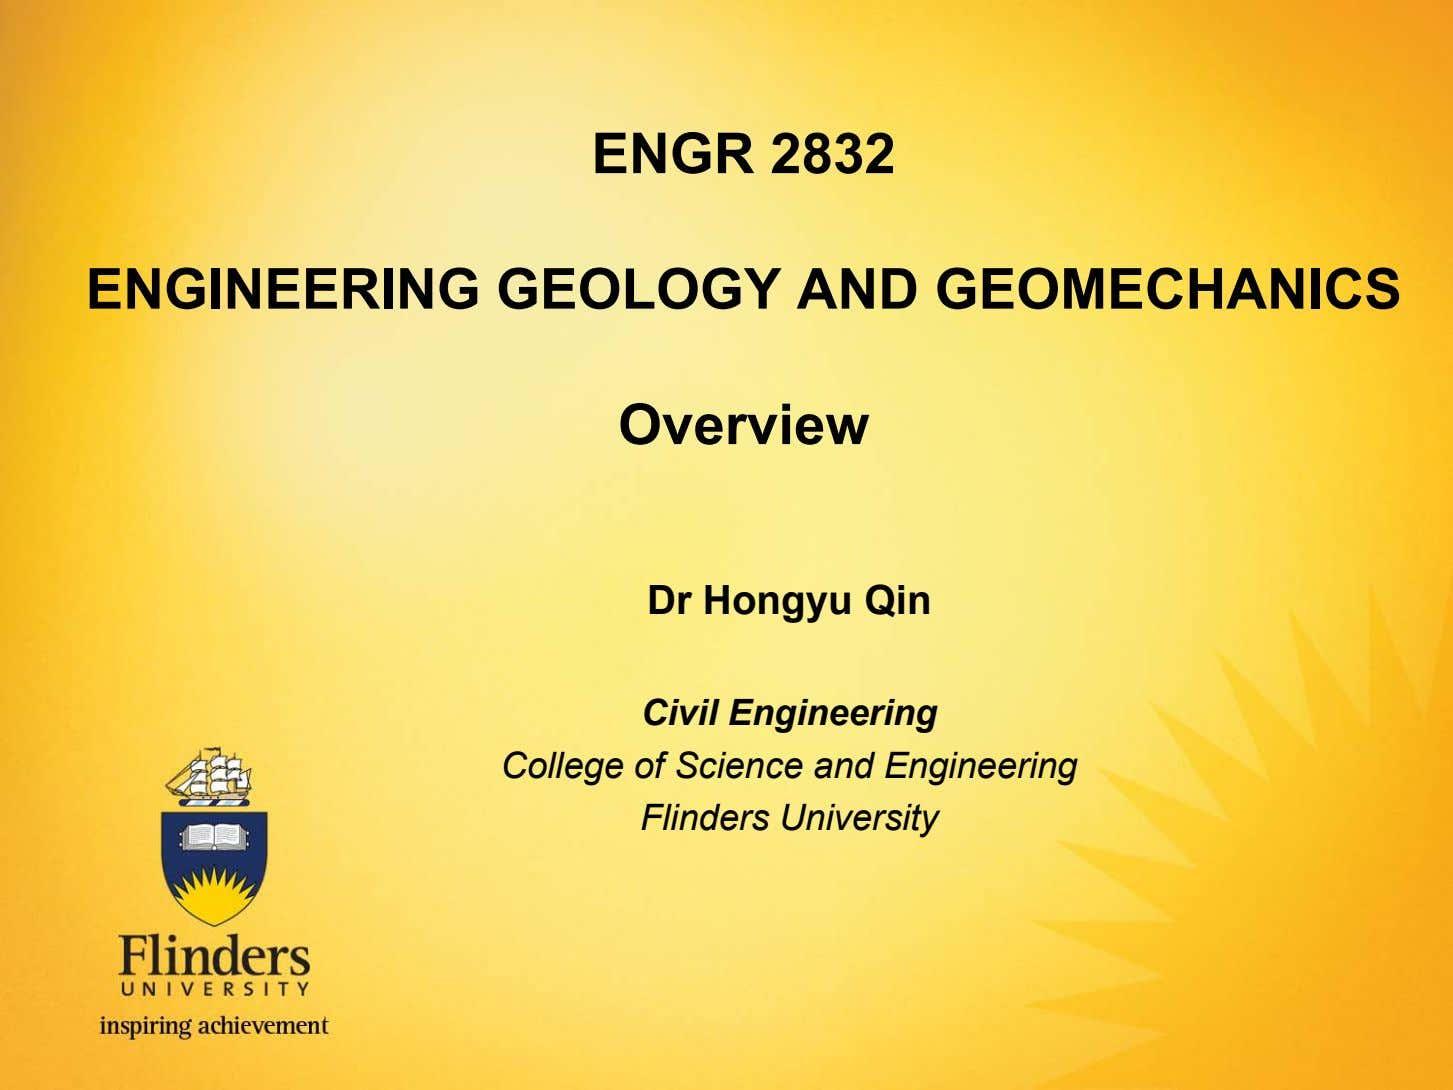 ENGR 2832 ENGINEERING GEOLOGY AND GEOMECHANICS Overview Dr Hongyu Qin Civil Engineering College of Science